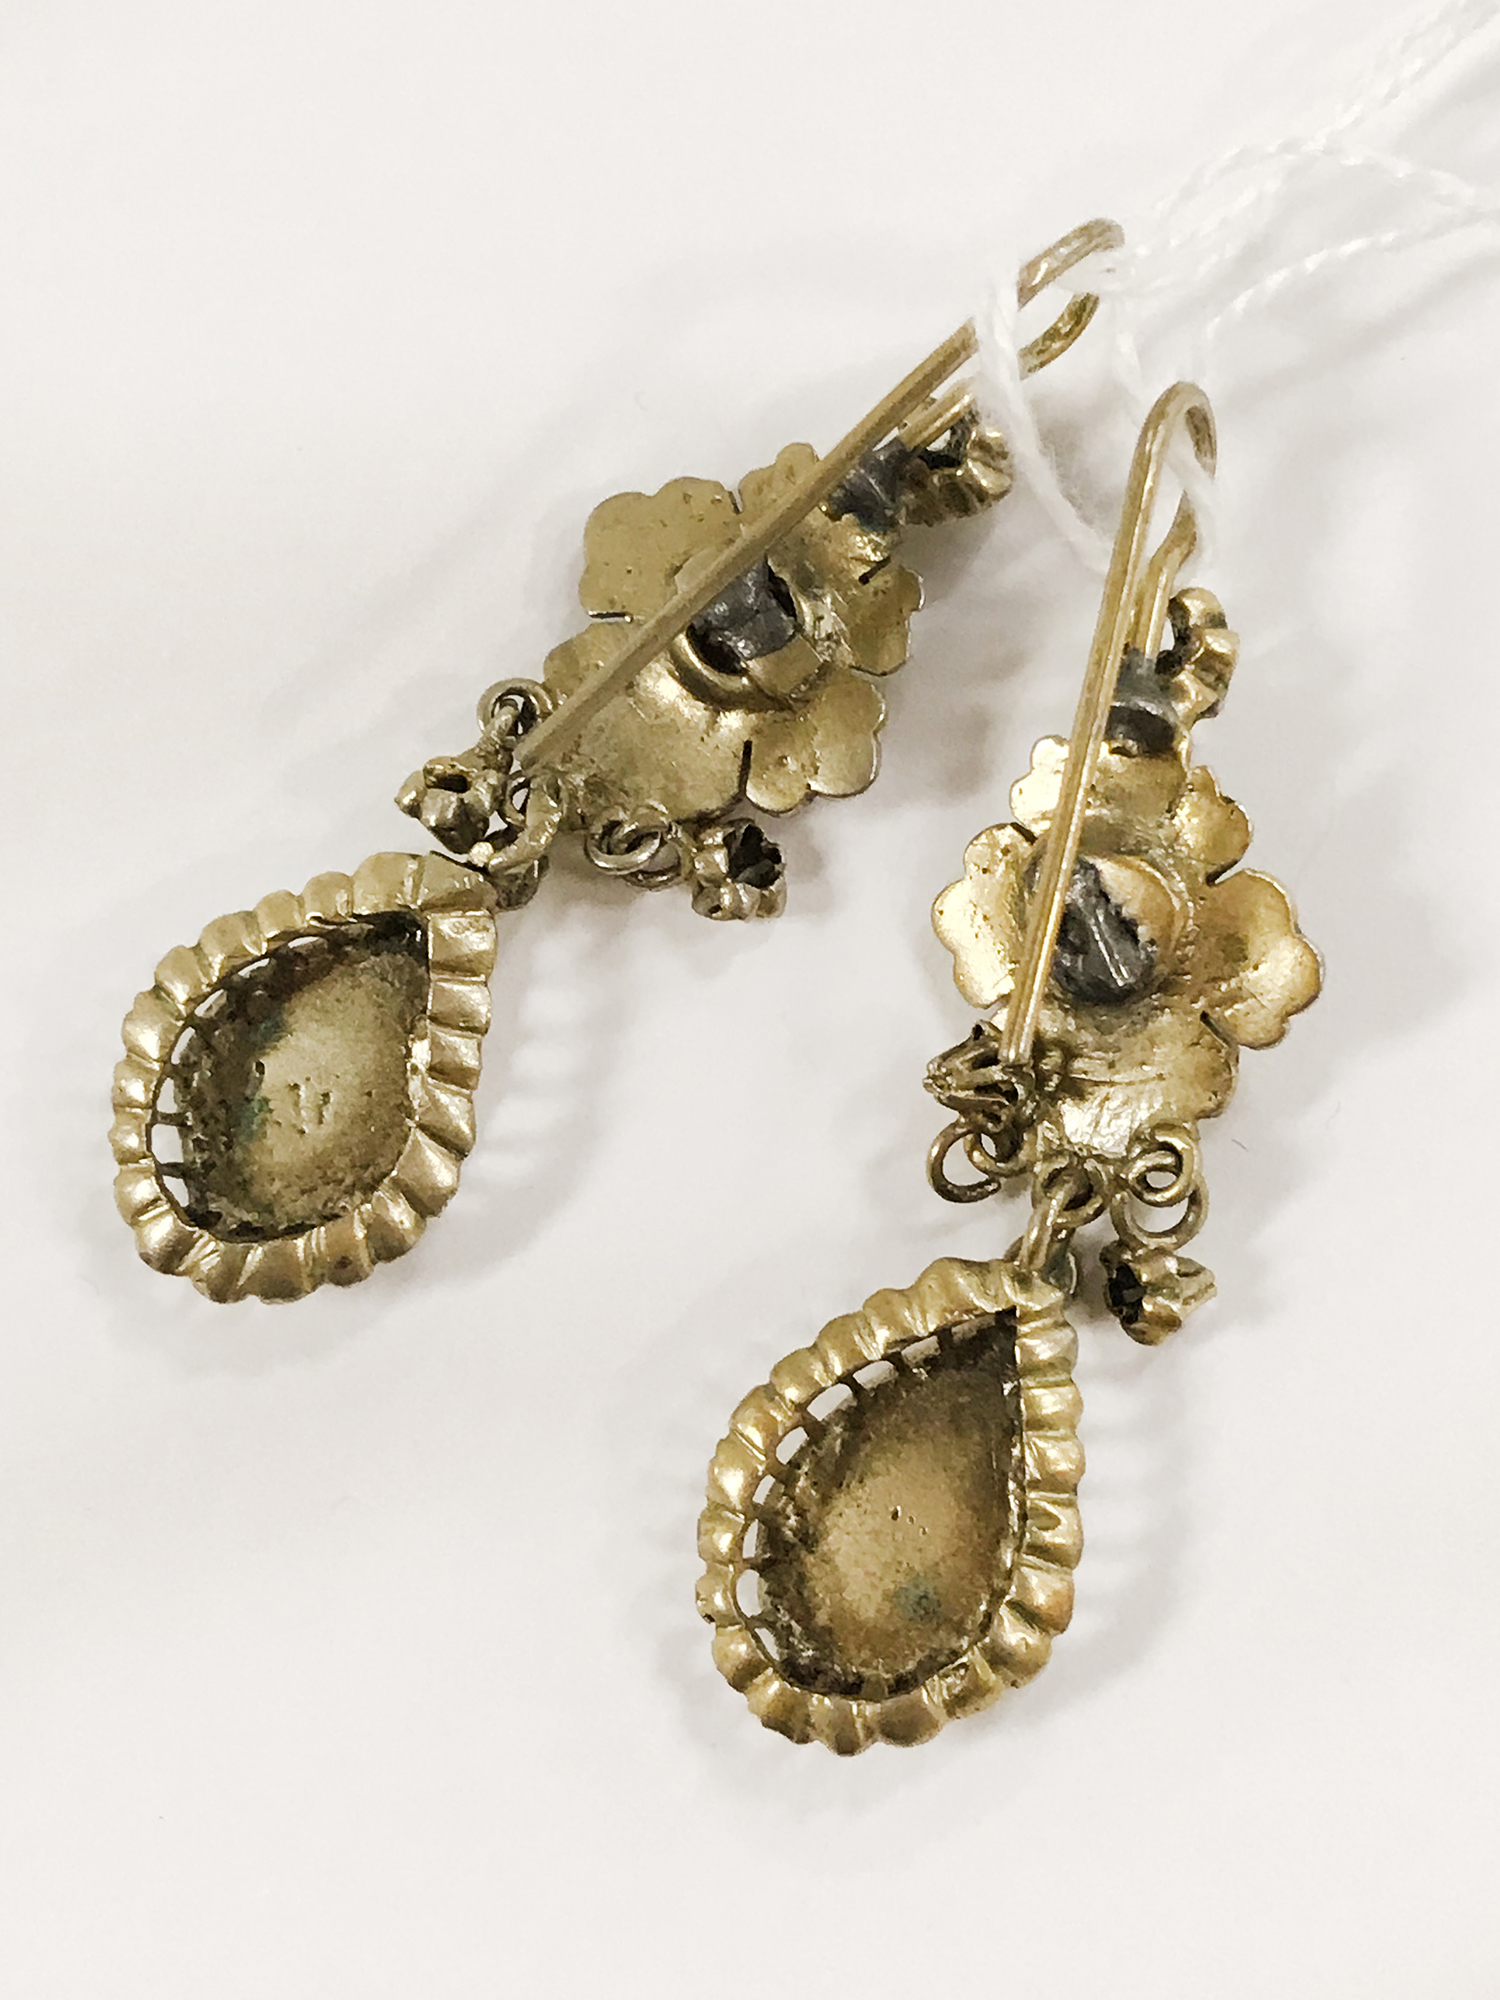 ANTIQUE EARRINGS WITH DIAMONDS - Image 2 of 2